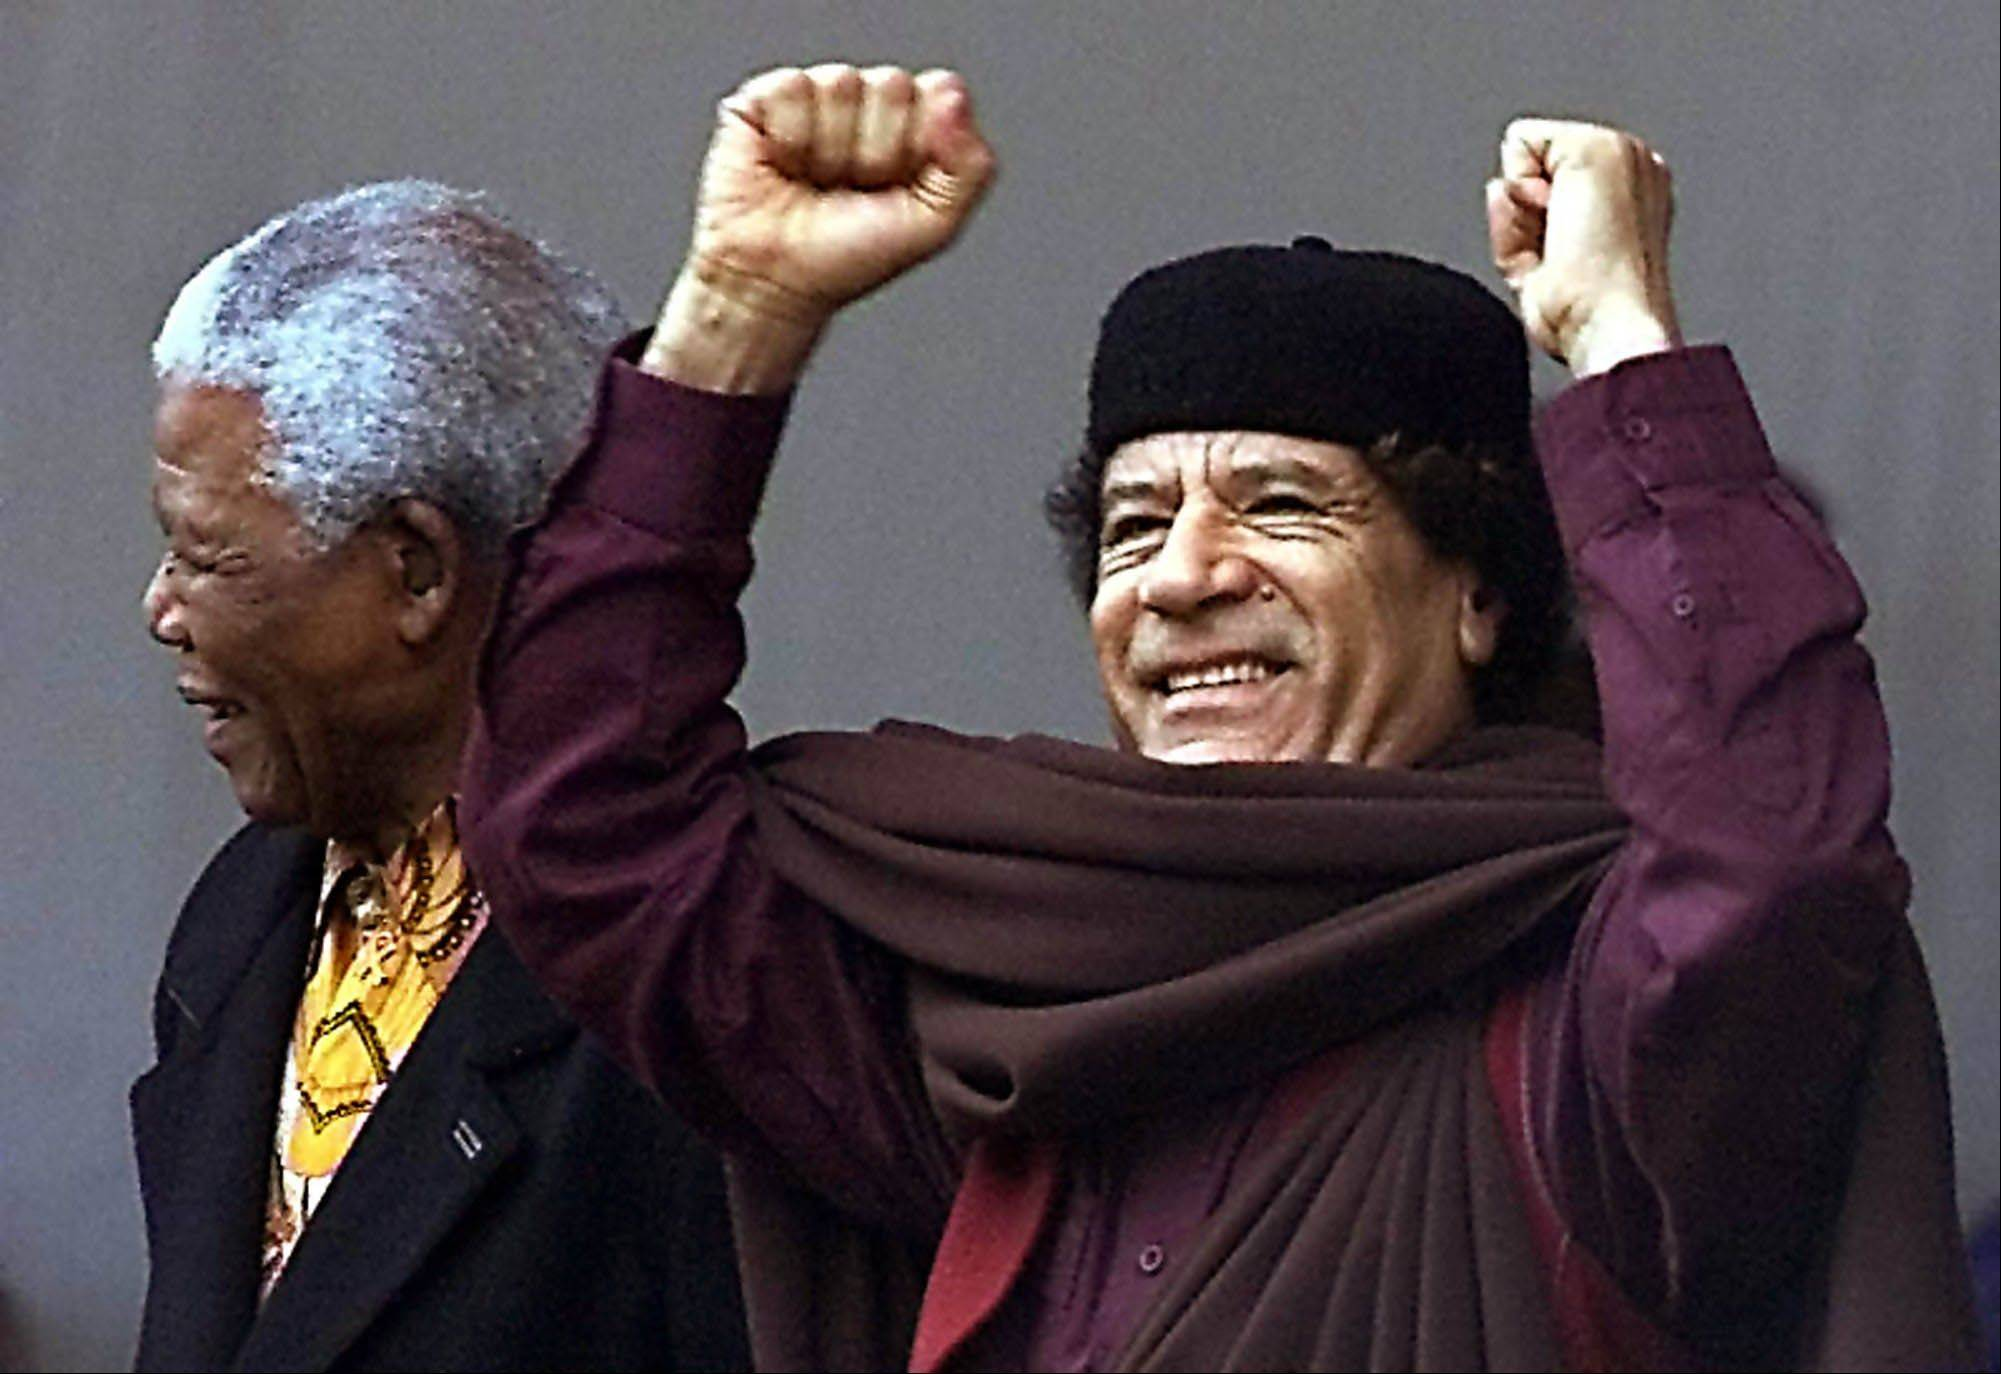 In this July 9, 2002 file photo, Libyan leader Moammar Gadhafi , right, stands with former South African President Nelson Mandela at the launch of the African Union (AU) in Durban, South Africa.